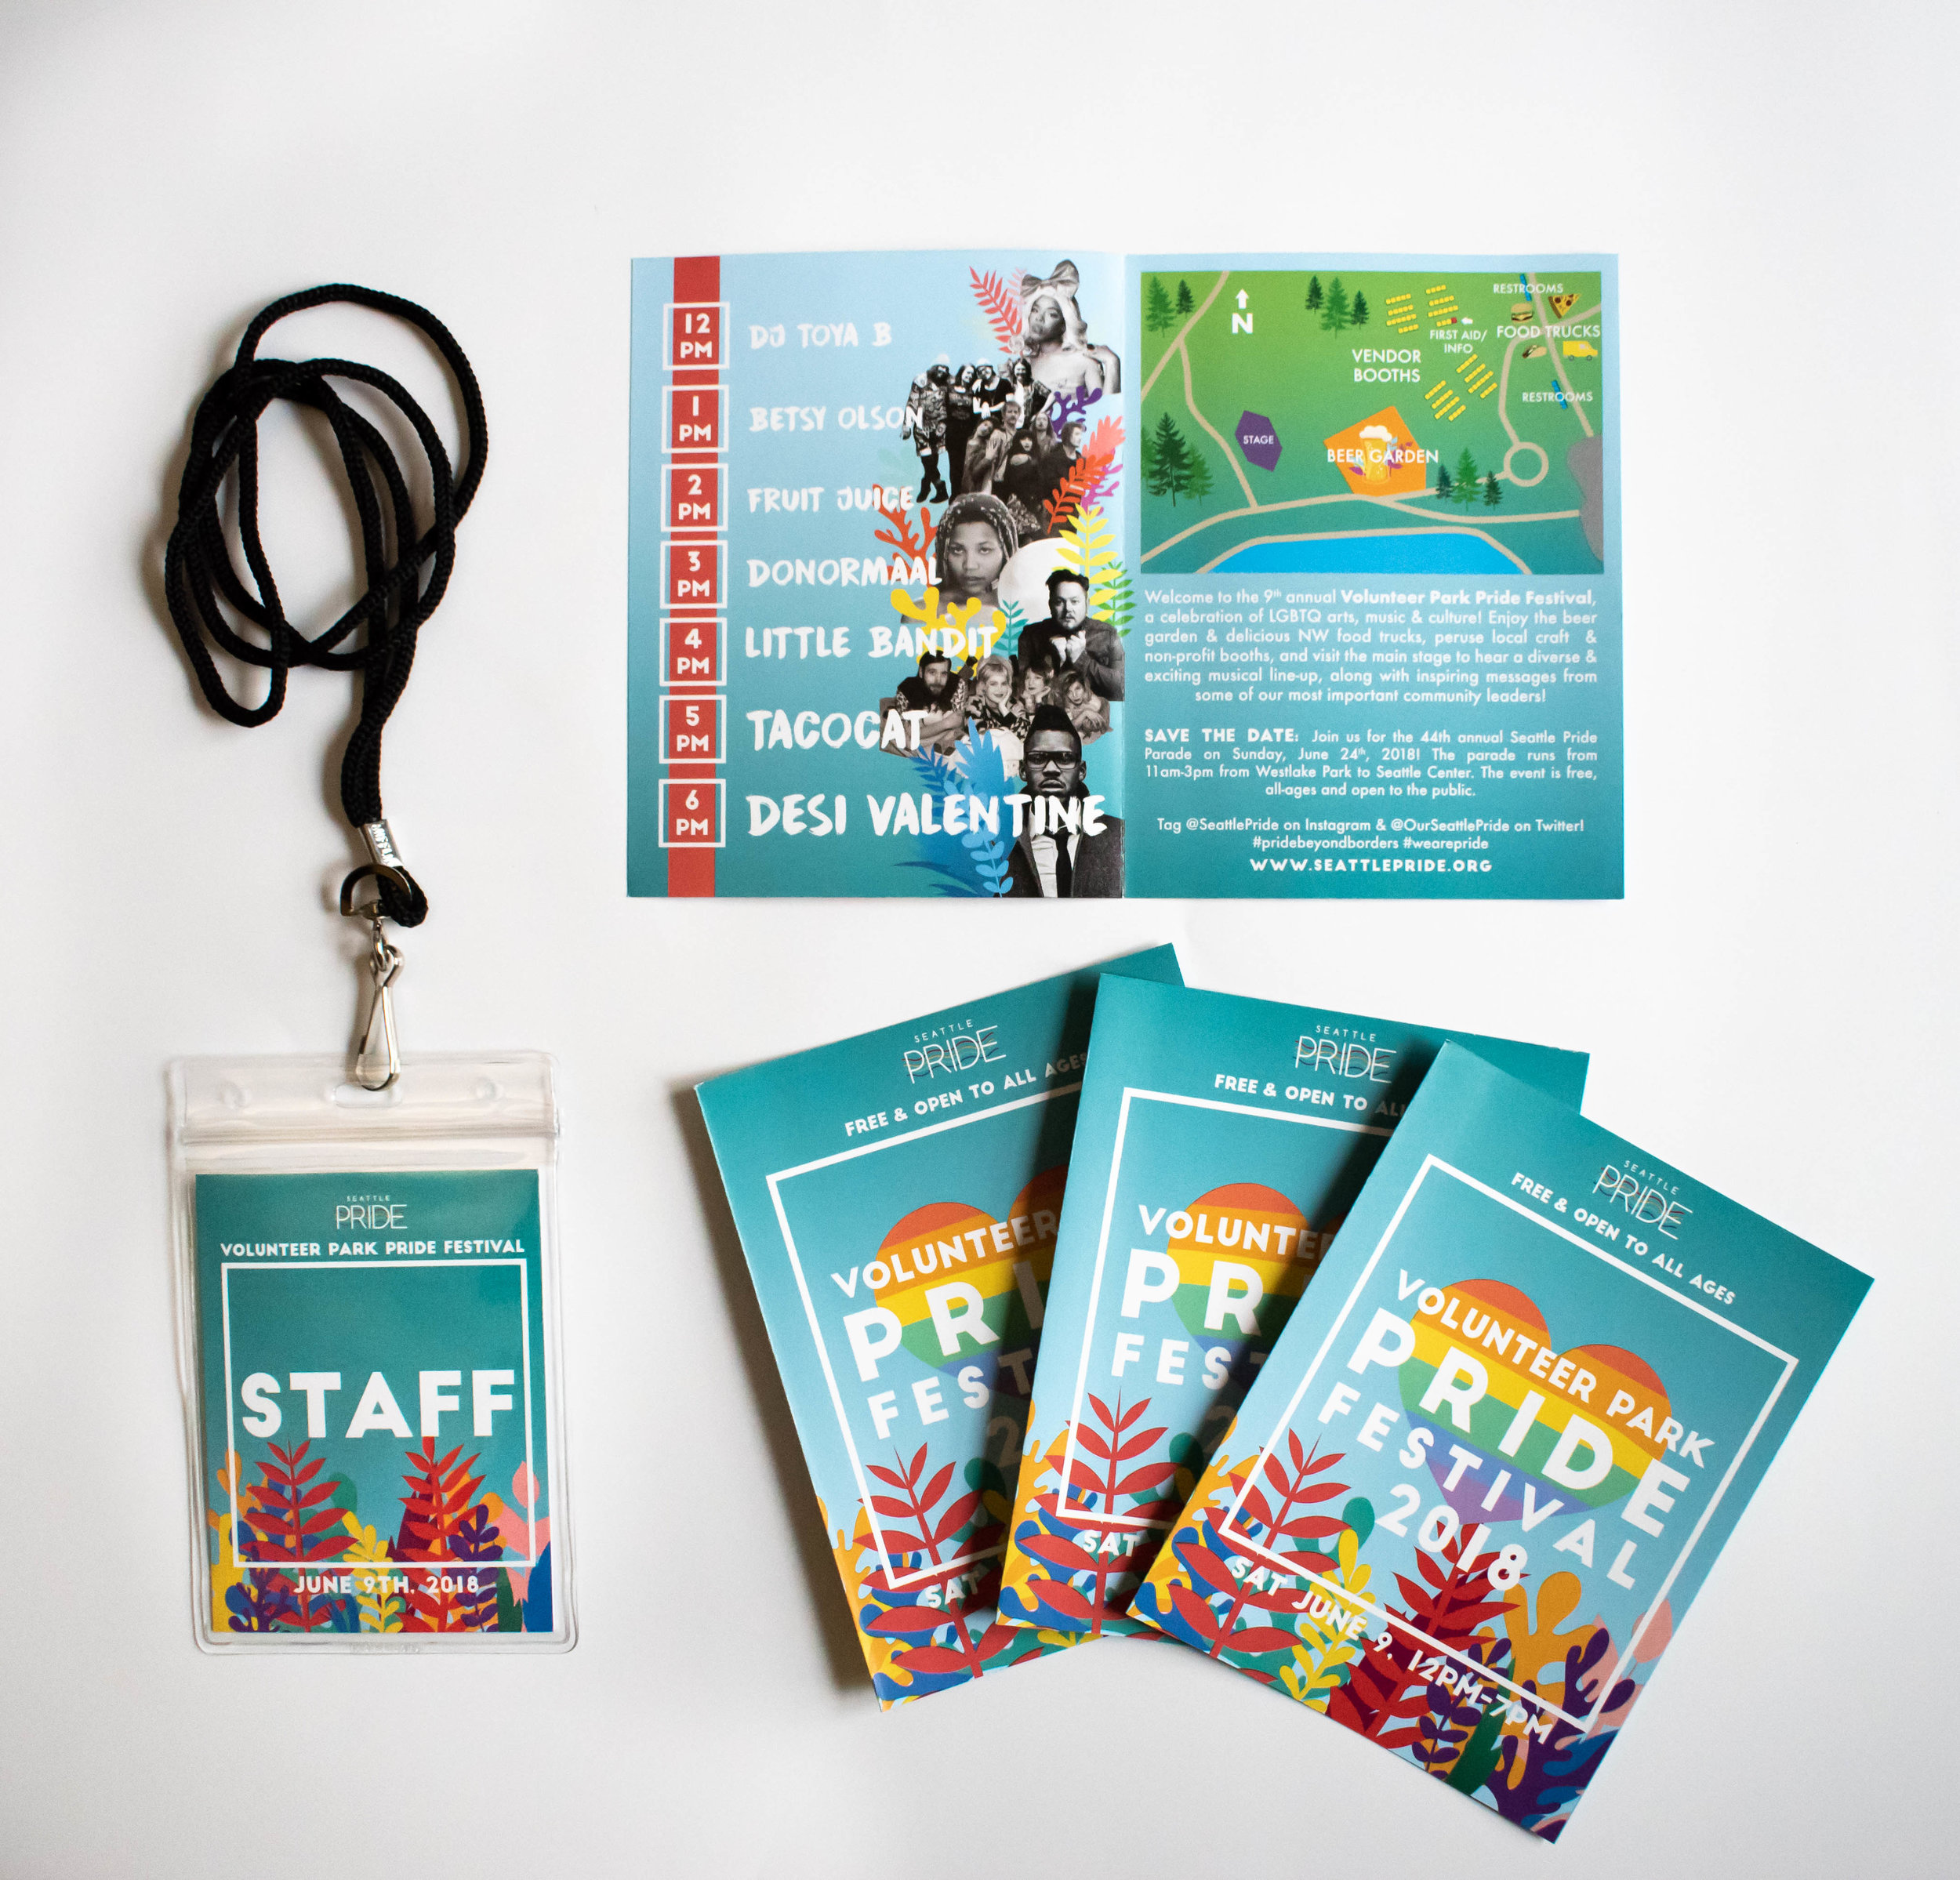 Staff badge, event brochure